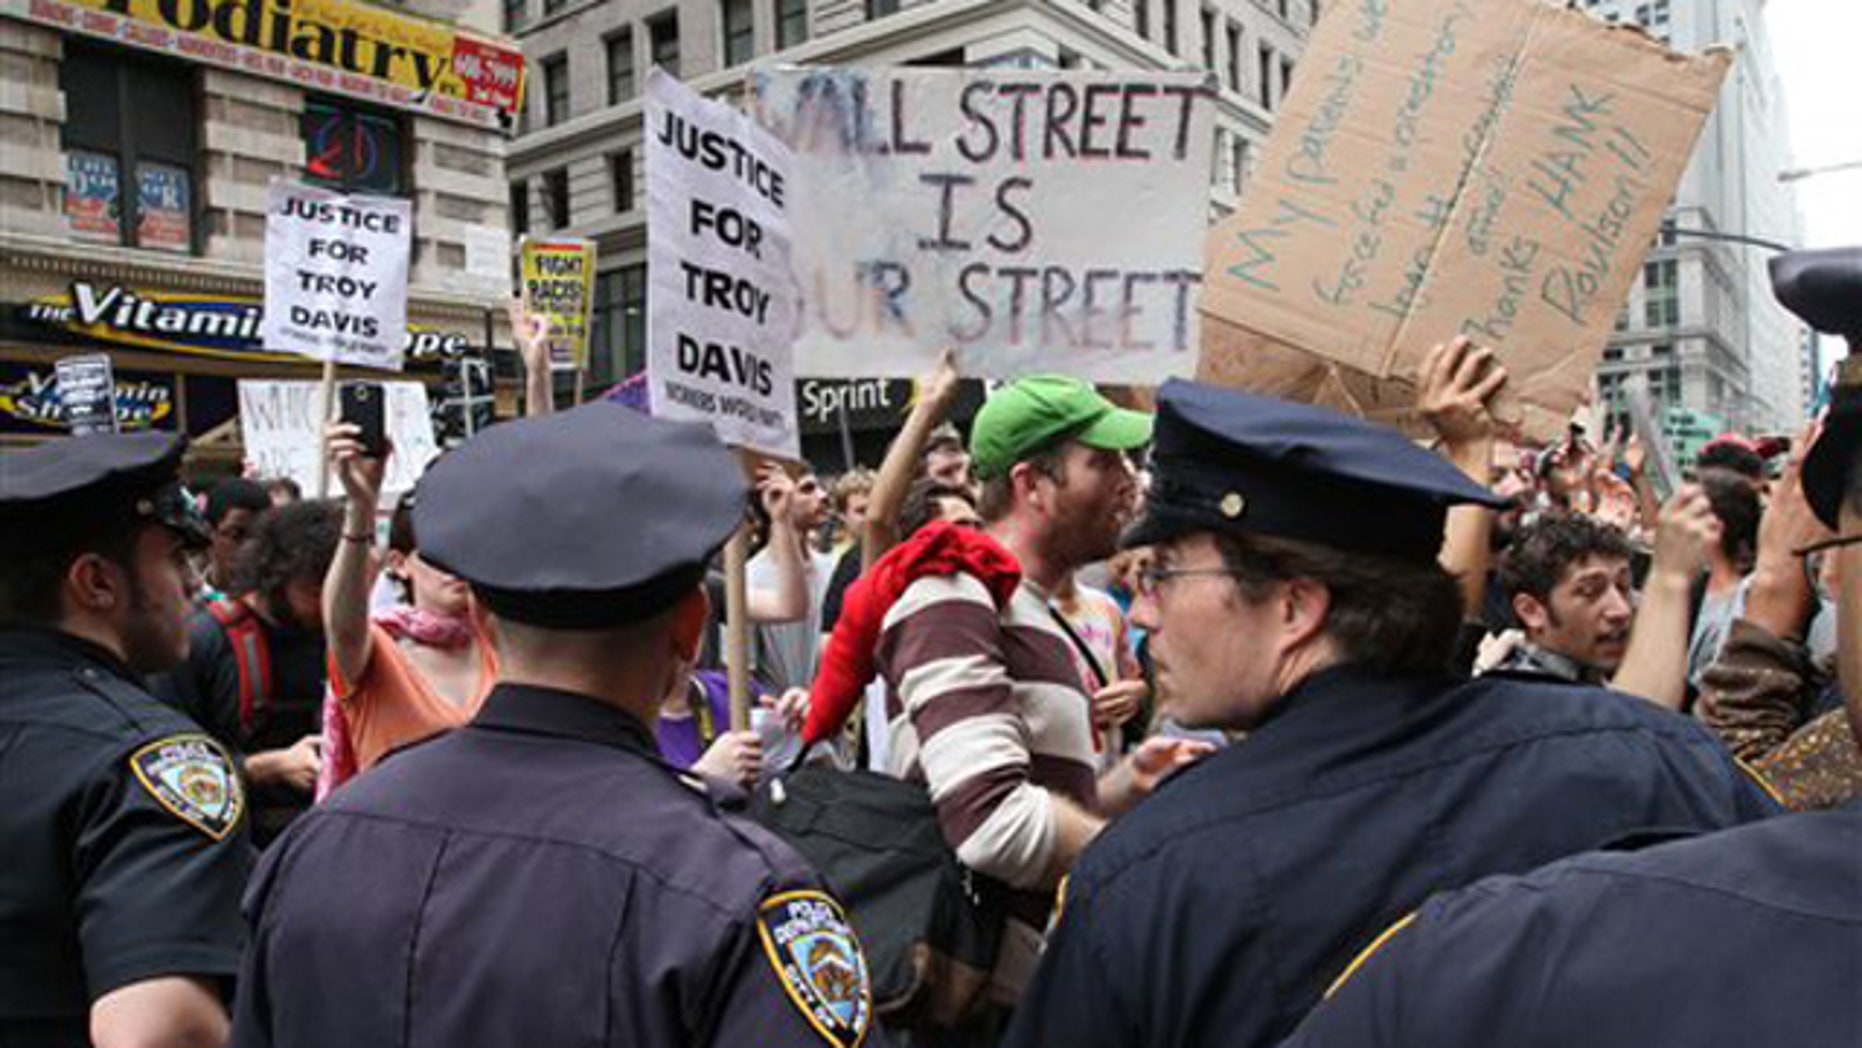 Participants in a march organized by Occupy Wall Street make their up Broadway as police stand by Saturday Sept. 24, 2011 in New York.